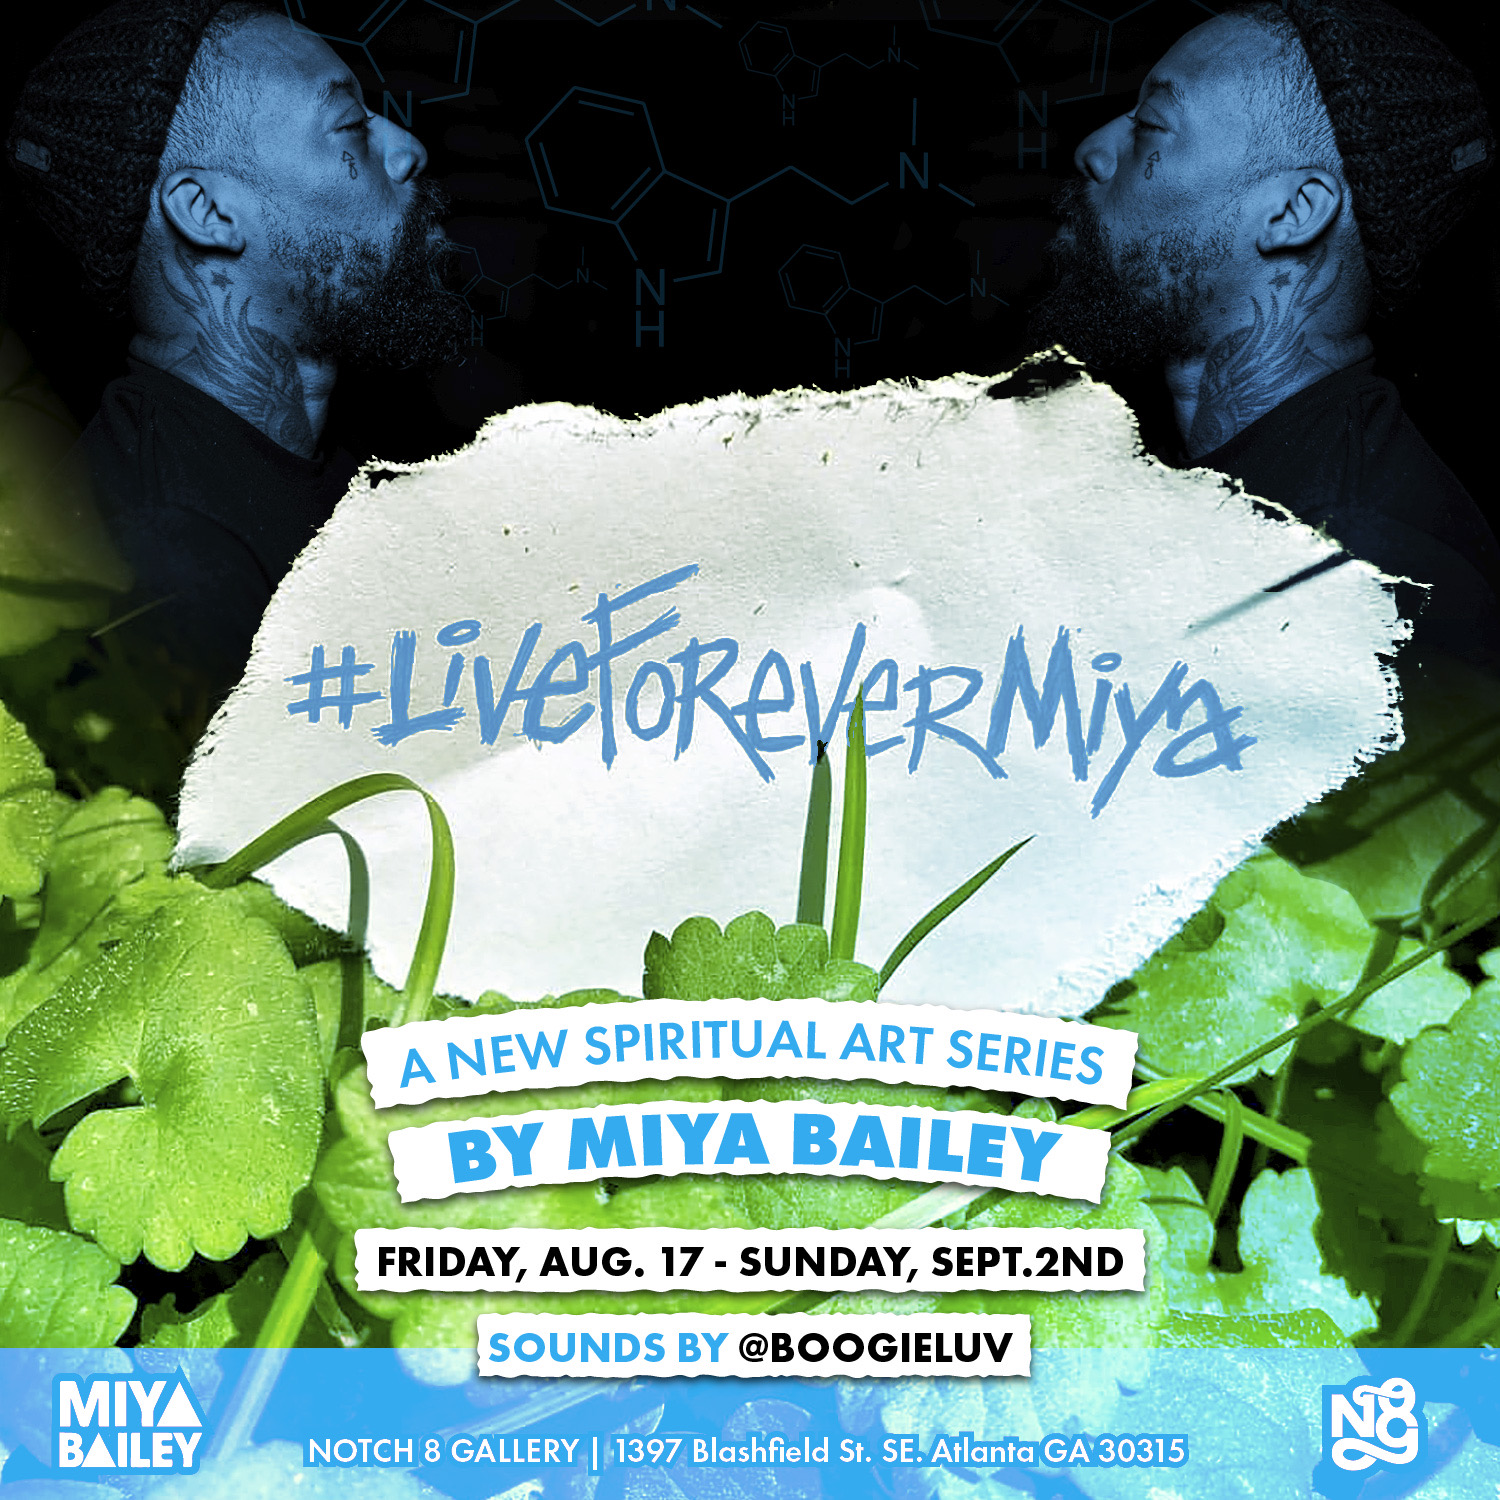 Live Forever Miya - A new exhibition by Miya Bailey exploring spirituality.August 17- September 2, 2018